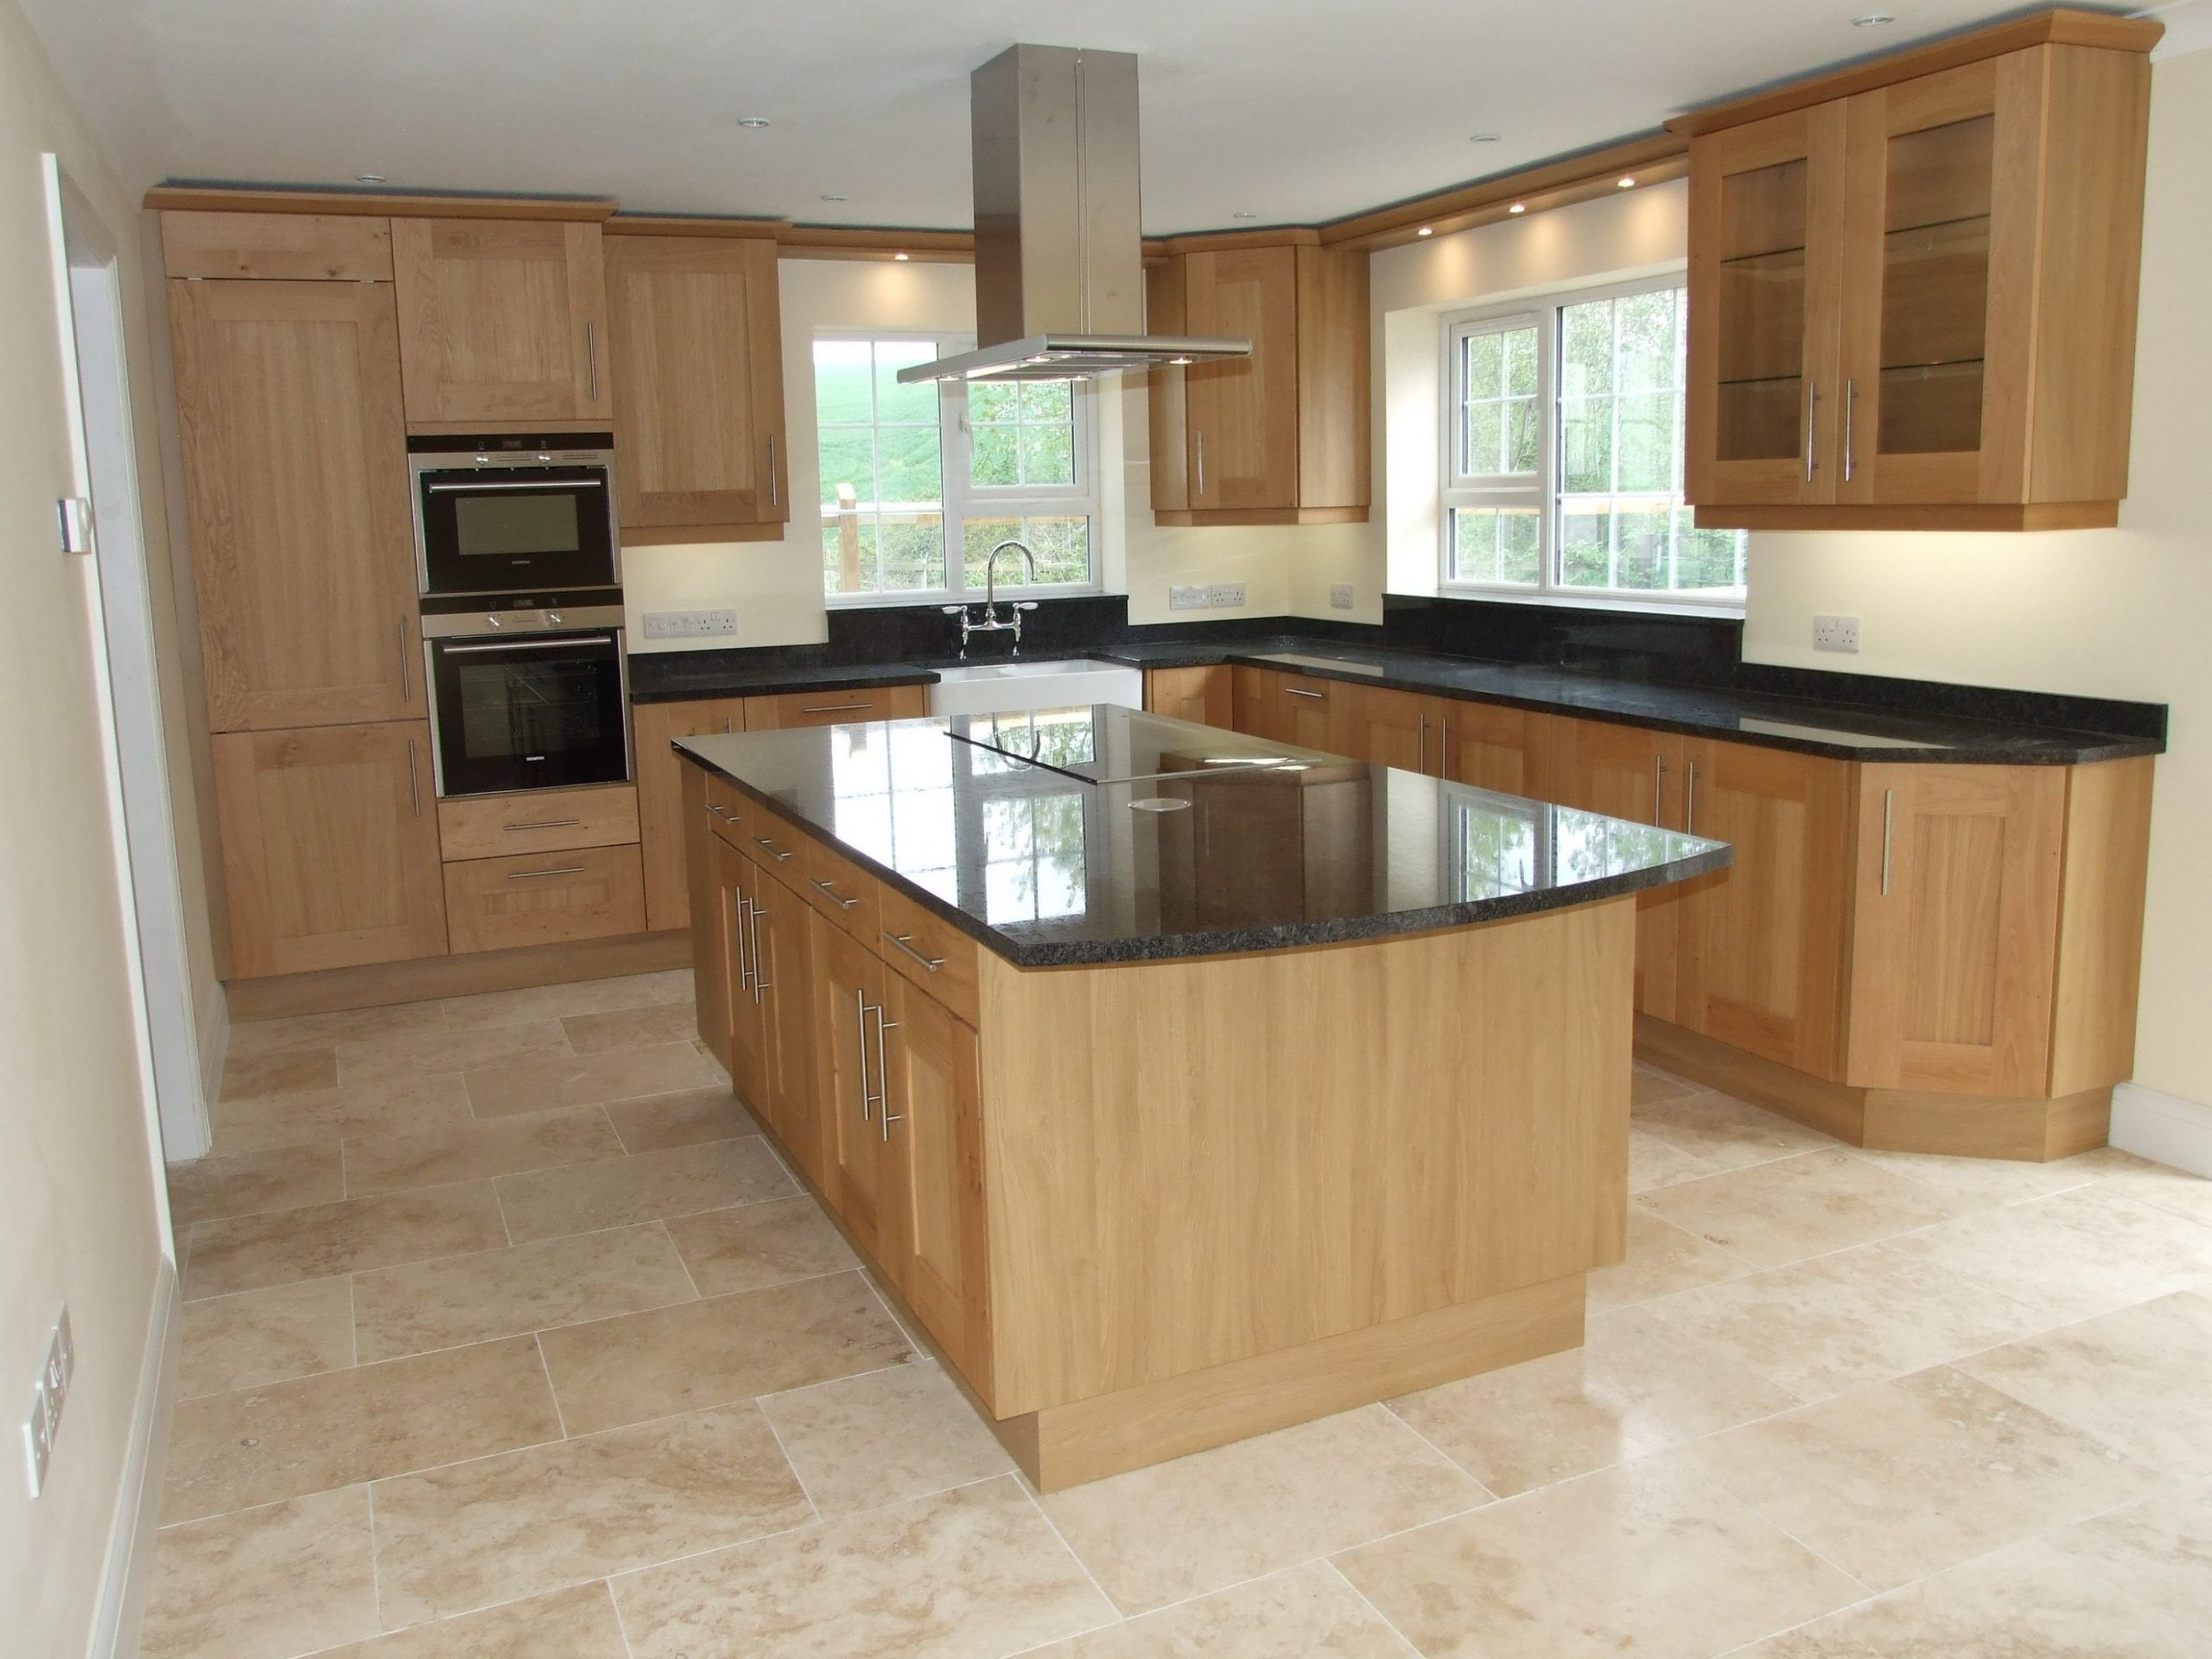 Why Is Kitchen Floor Ideas With Honey Oak Cabinets So Famous? #honeyoakcabinets